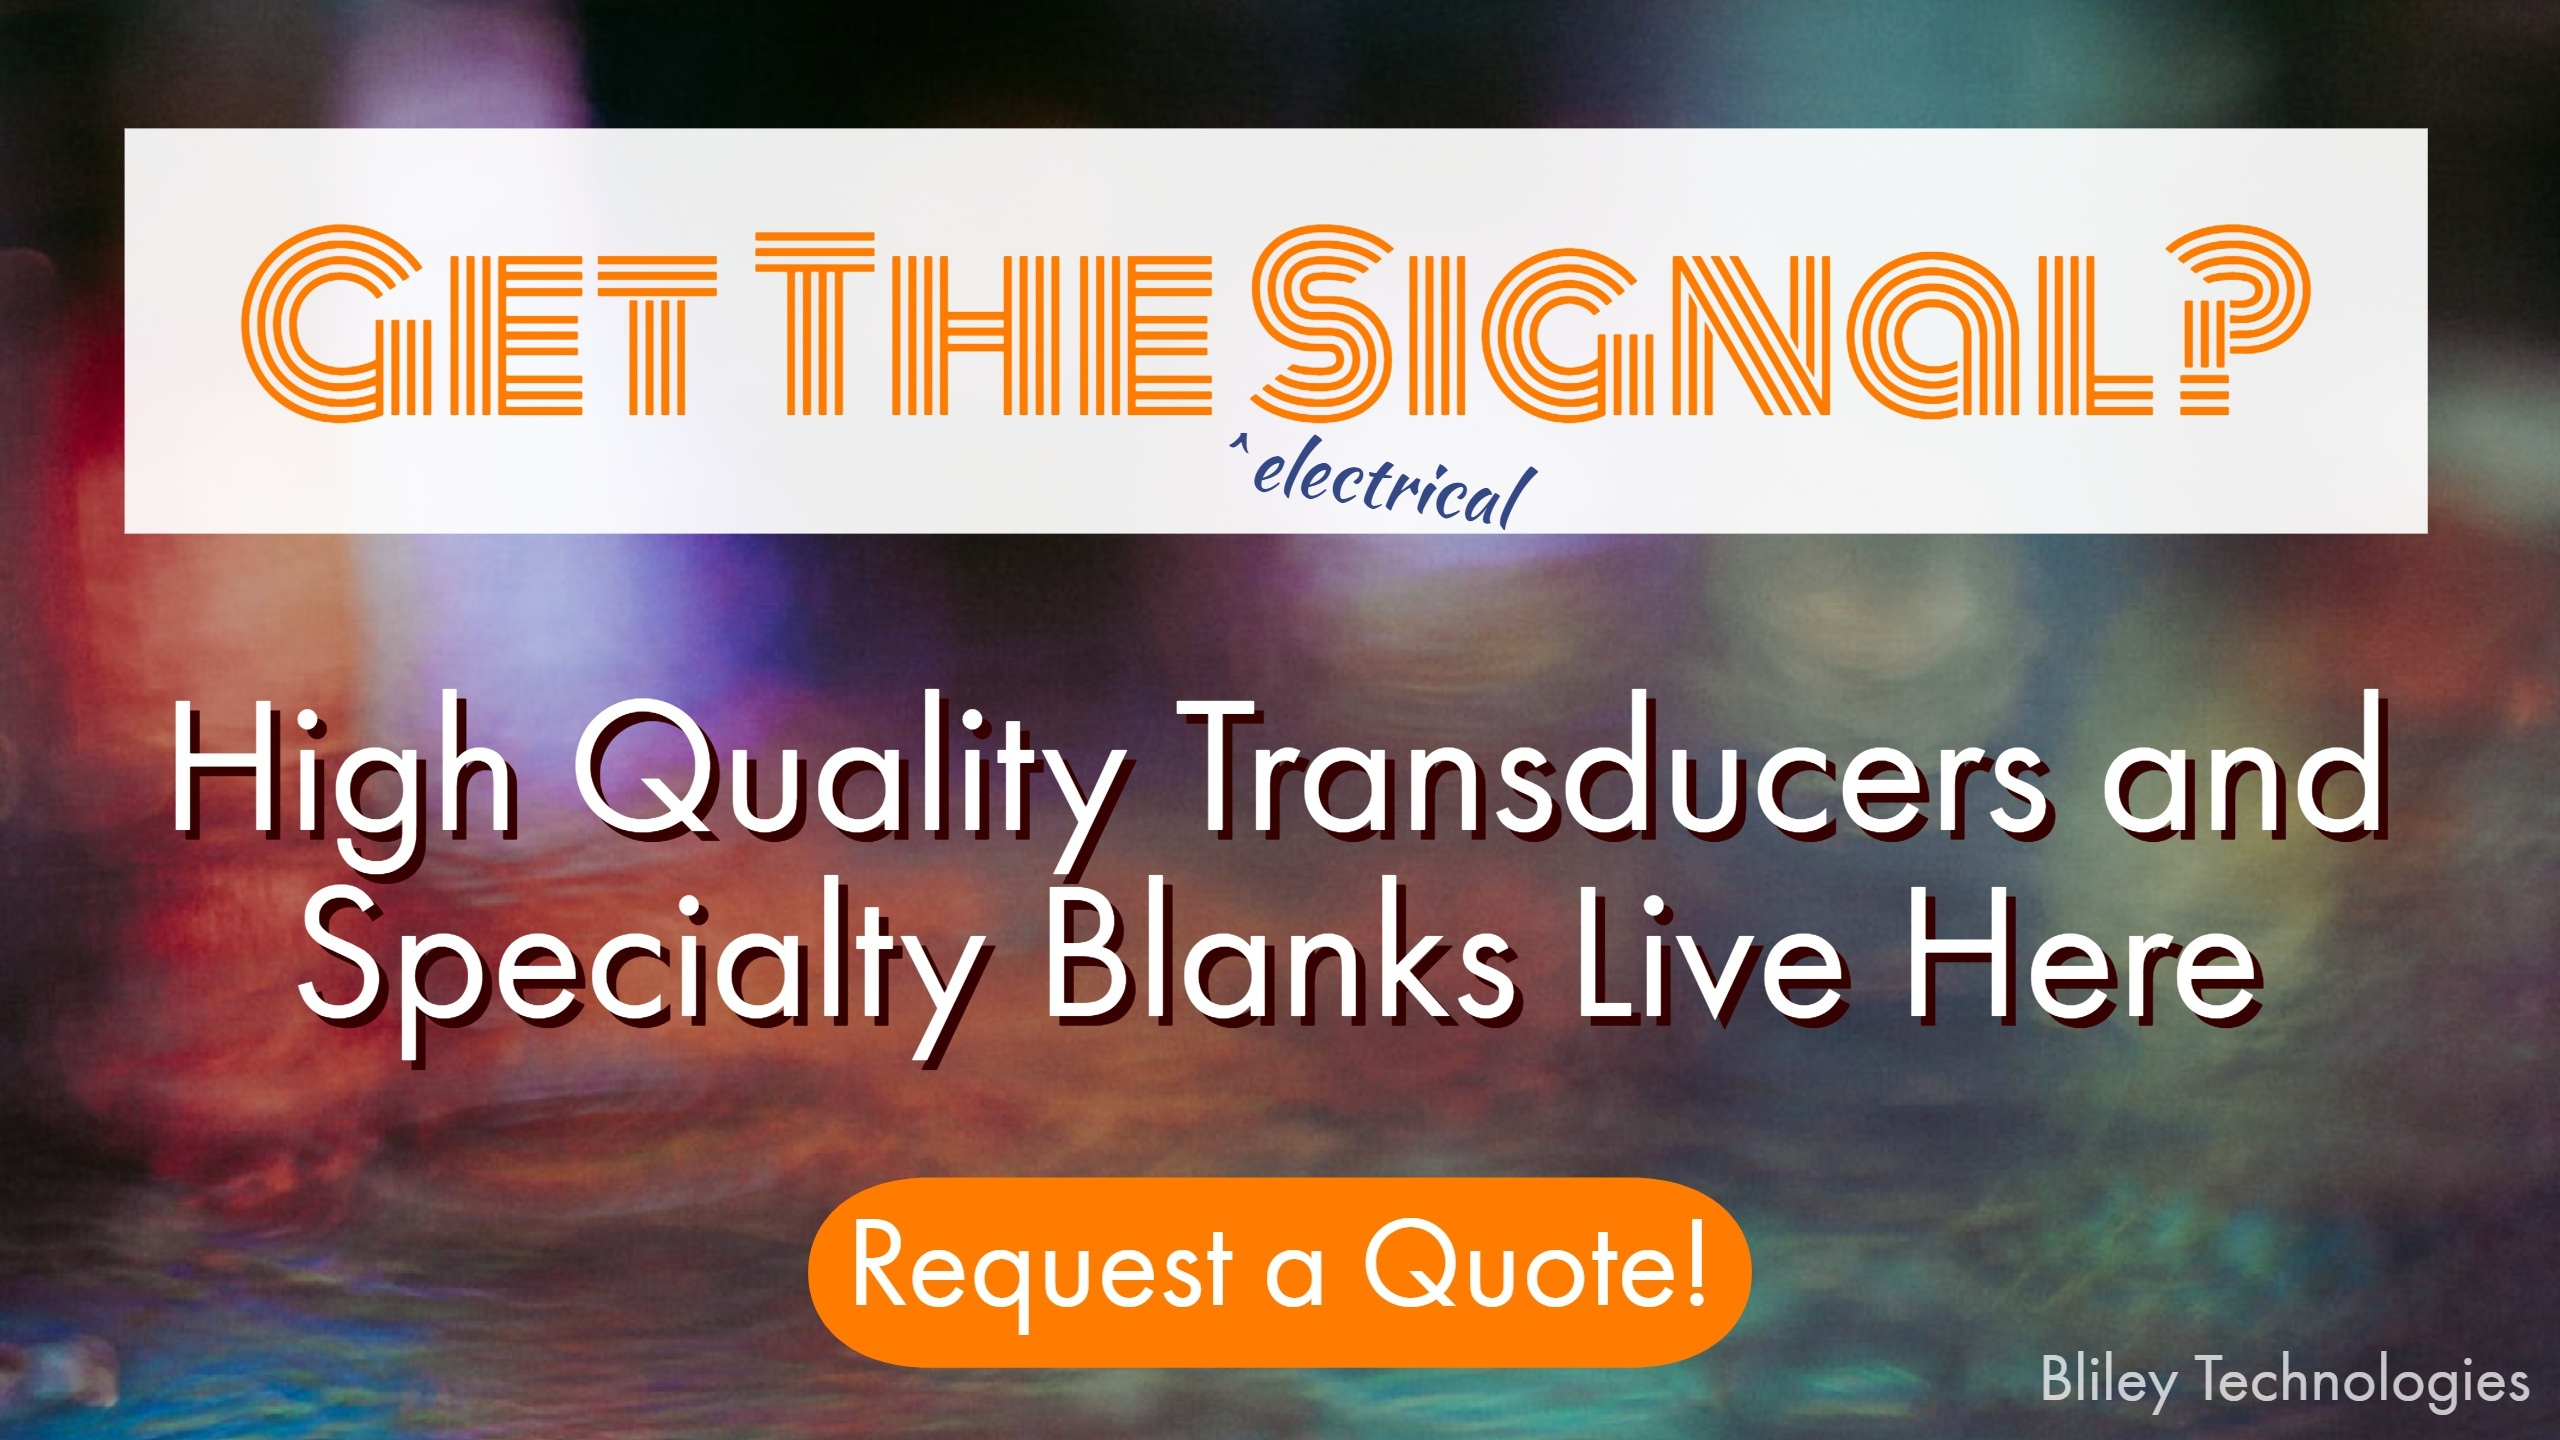 bliley technologies transducers and specialty transducer blanks quote